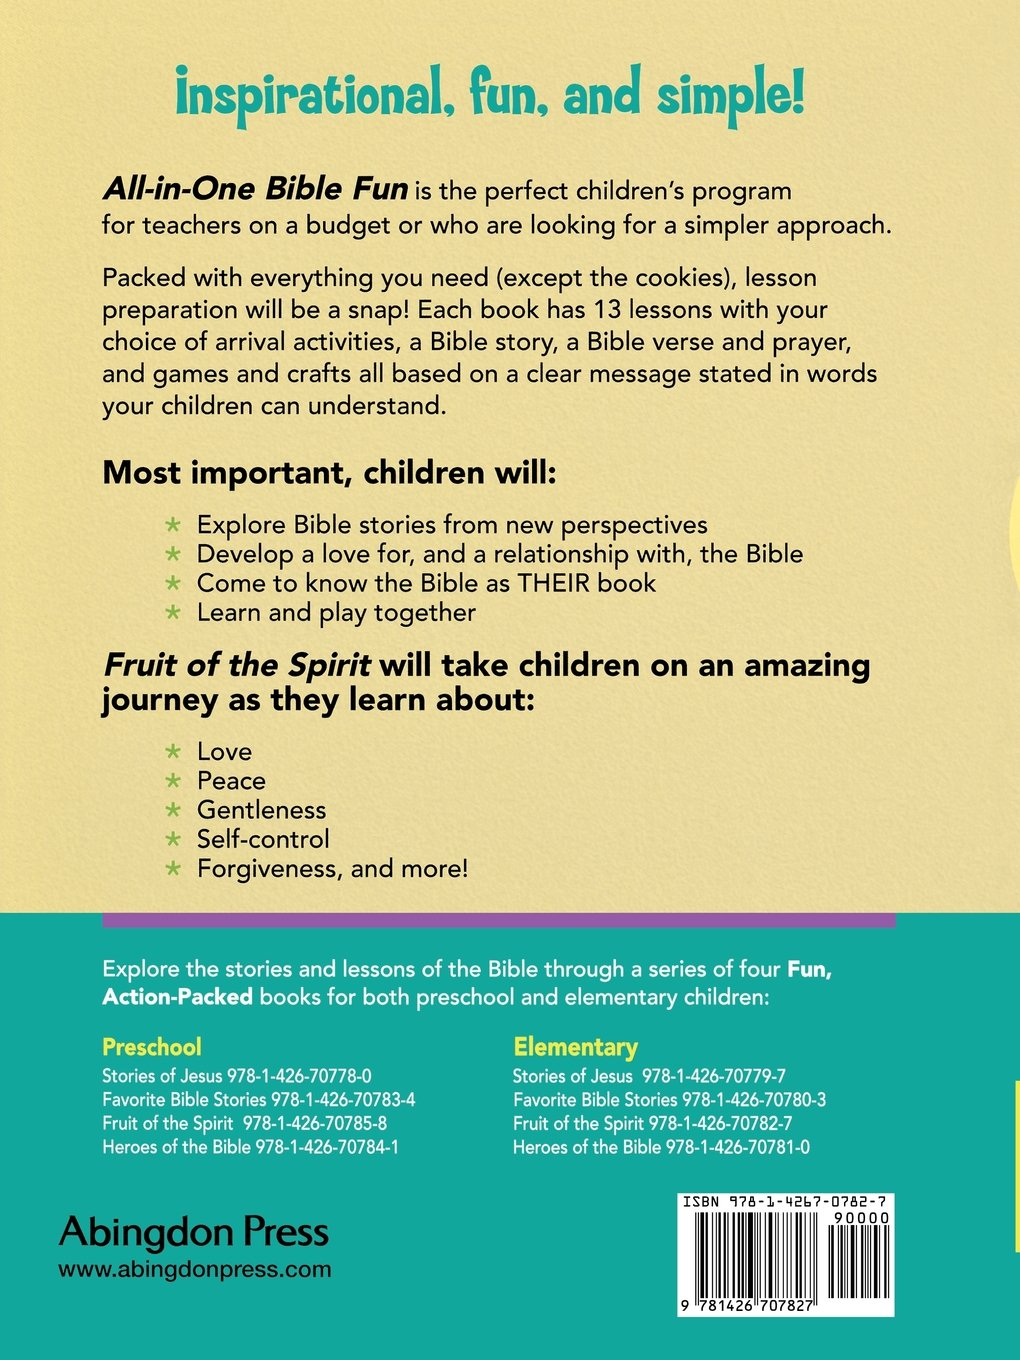 all in one bible fun for elementary children fruit of the spirit